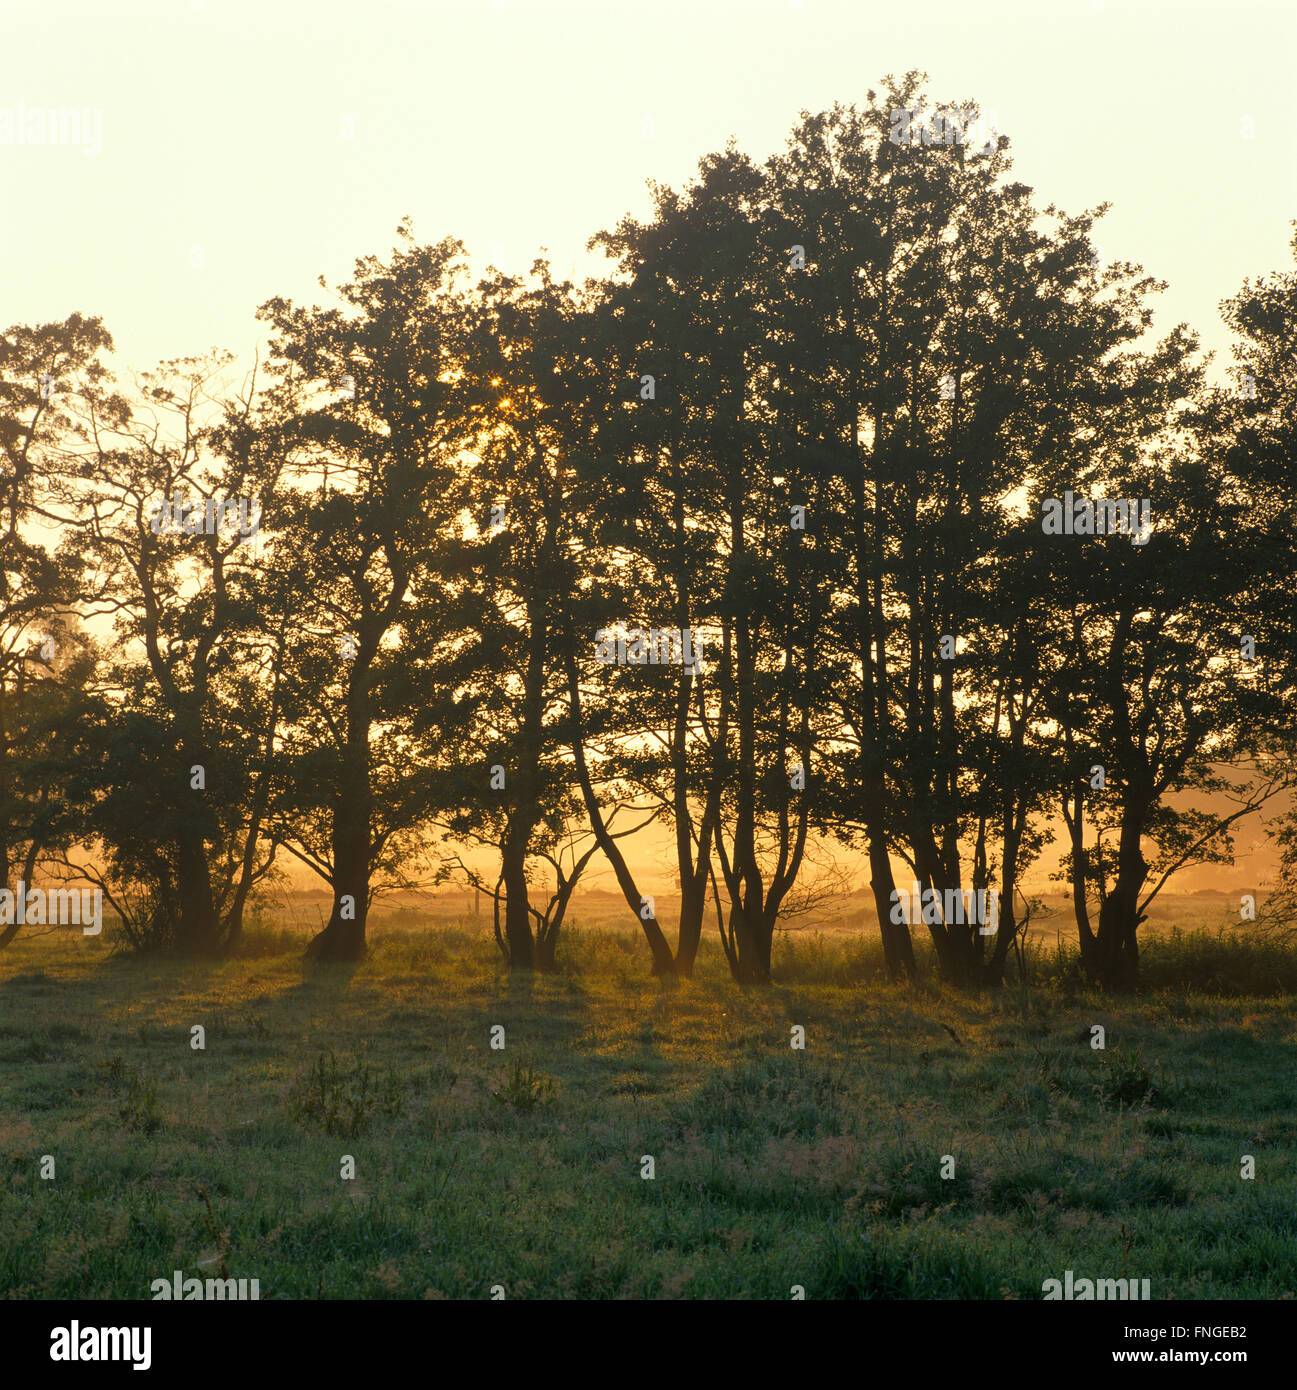 Holland, landscape with trees at dawn - Stock Image